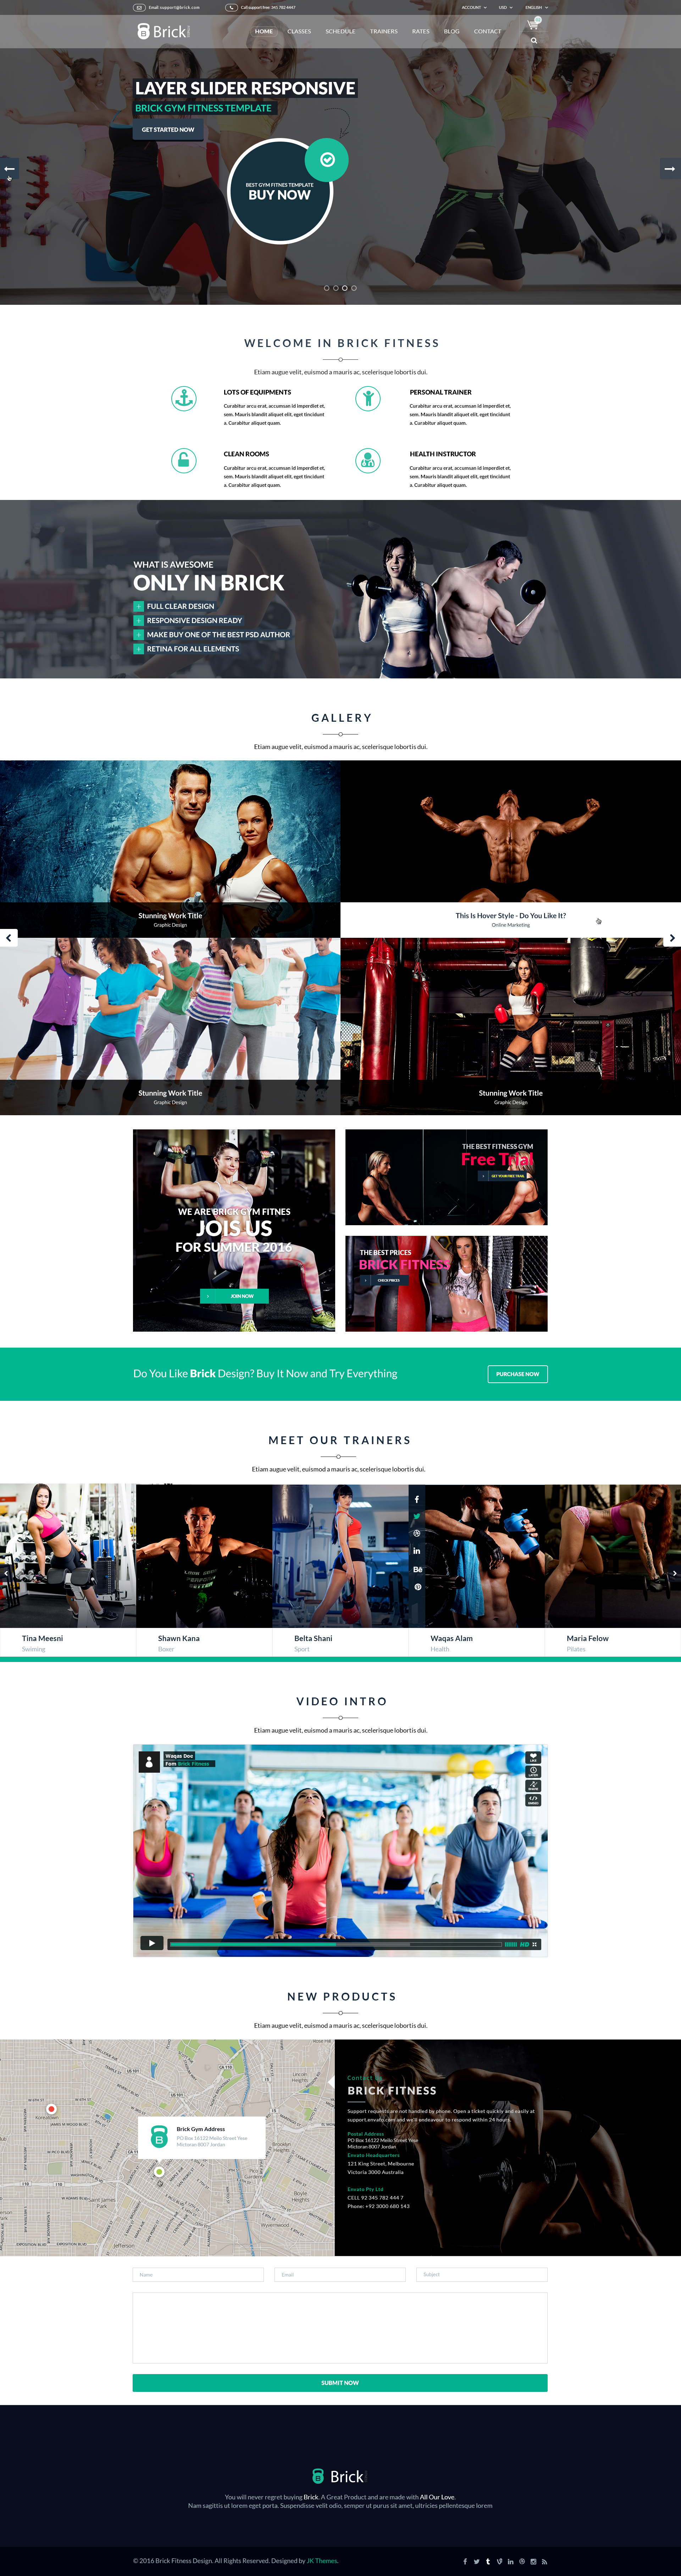 Brick Fitness PSD Template by thejkthemes | ThemeForest